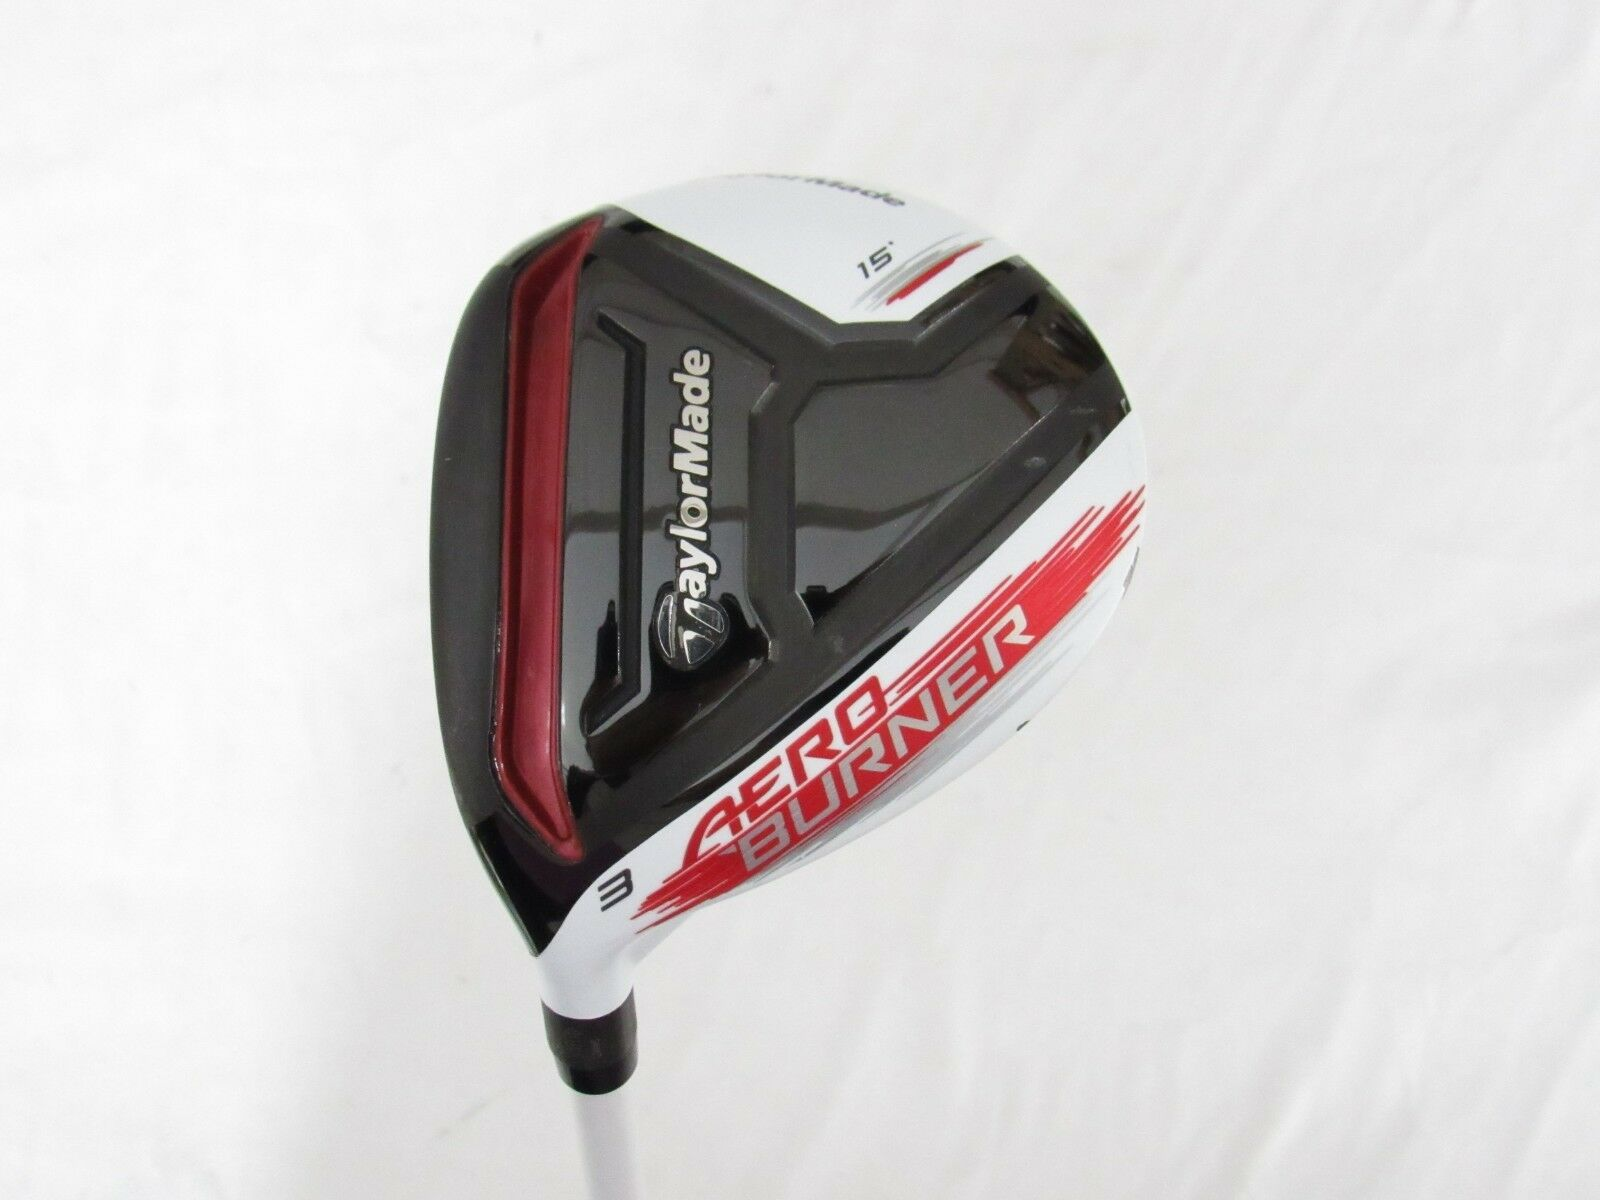 Used LH TaylorMade AeroBurner 15° 3 Fairway Wood Matrix Graphite Stiff S-Flex